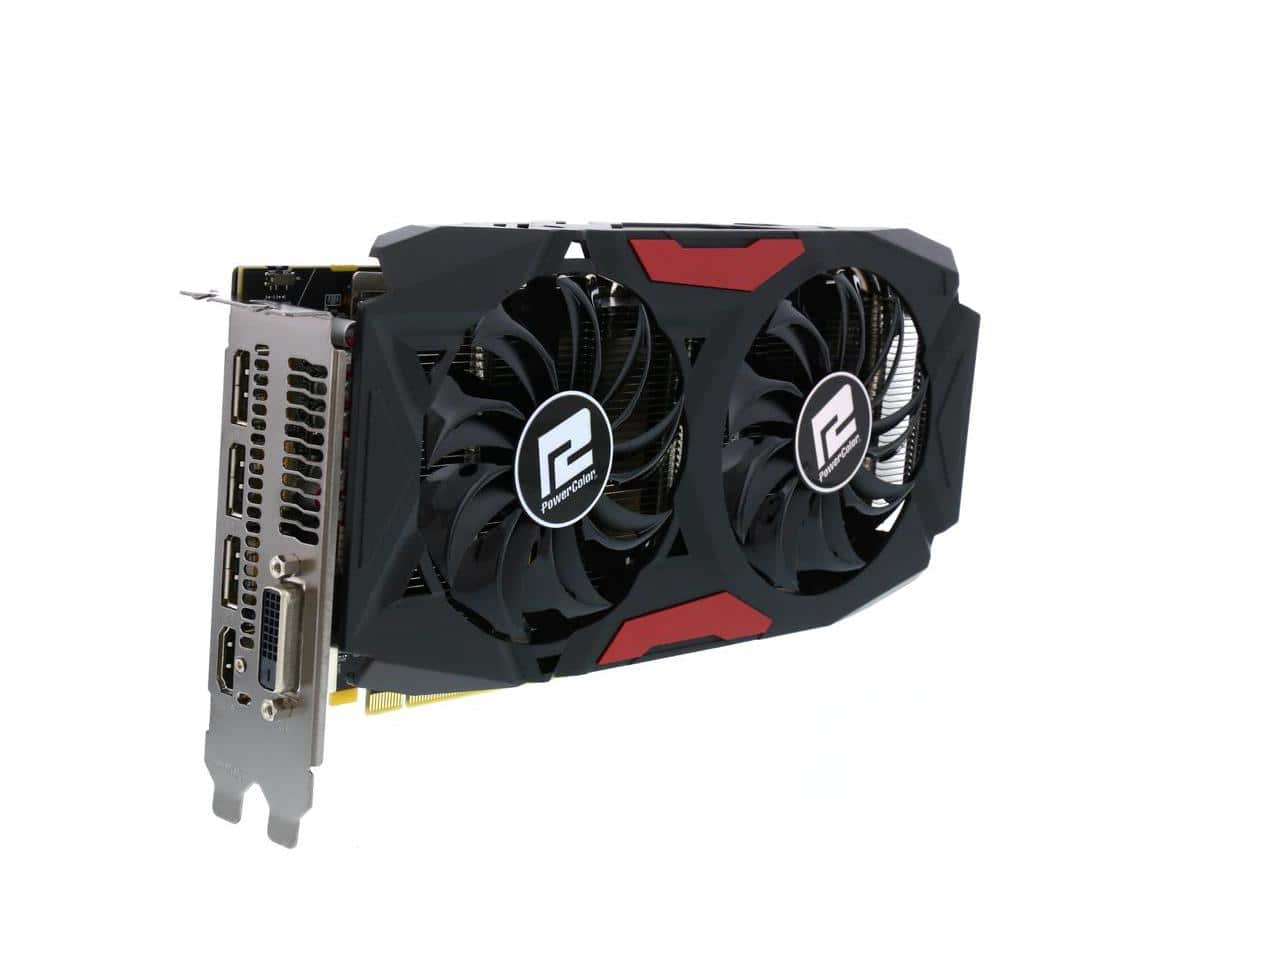 Radeon RX580 4GB $219!  Get it before idiot miners do!